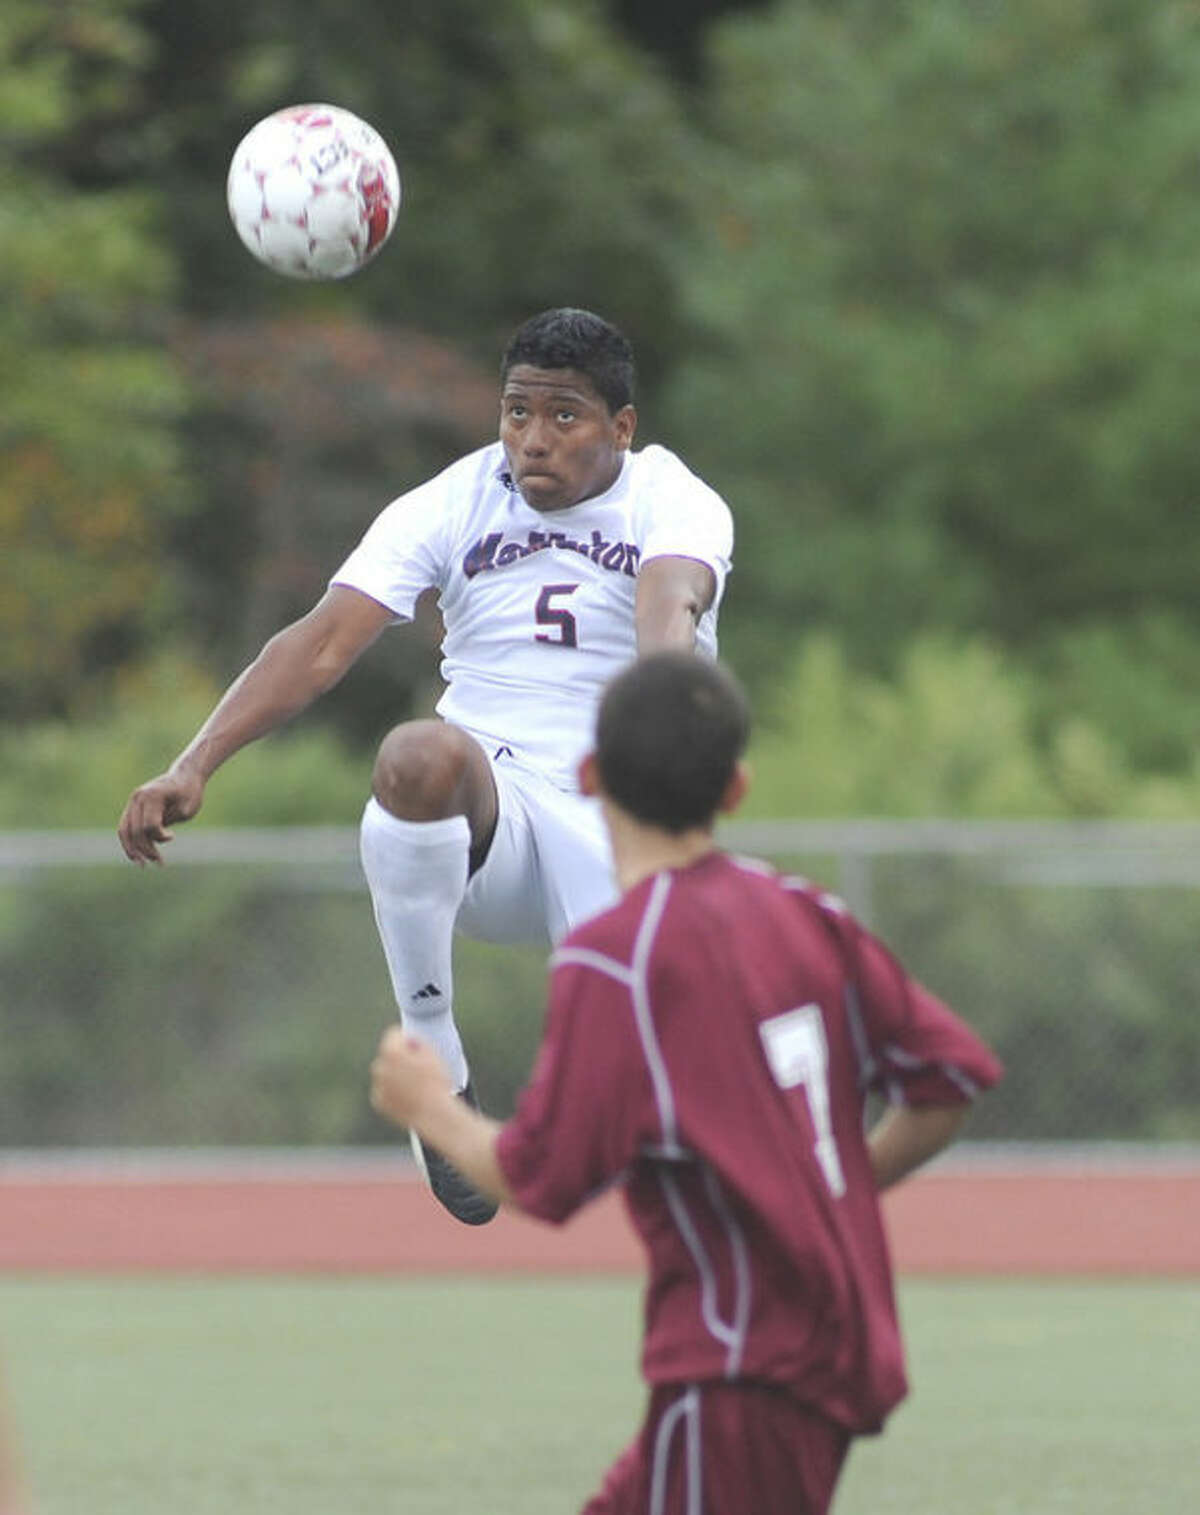 Hour photo/John Nash Kelvin Medina of the Brien McMahon boys soccer team goes airborne to volley a ball out of the air during Monday's FCIAC boys soccer game against St. Joseph. The visiting Cadets won 1-0.